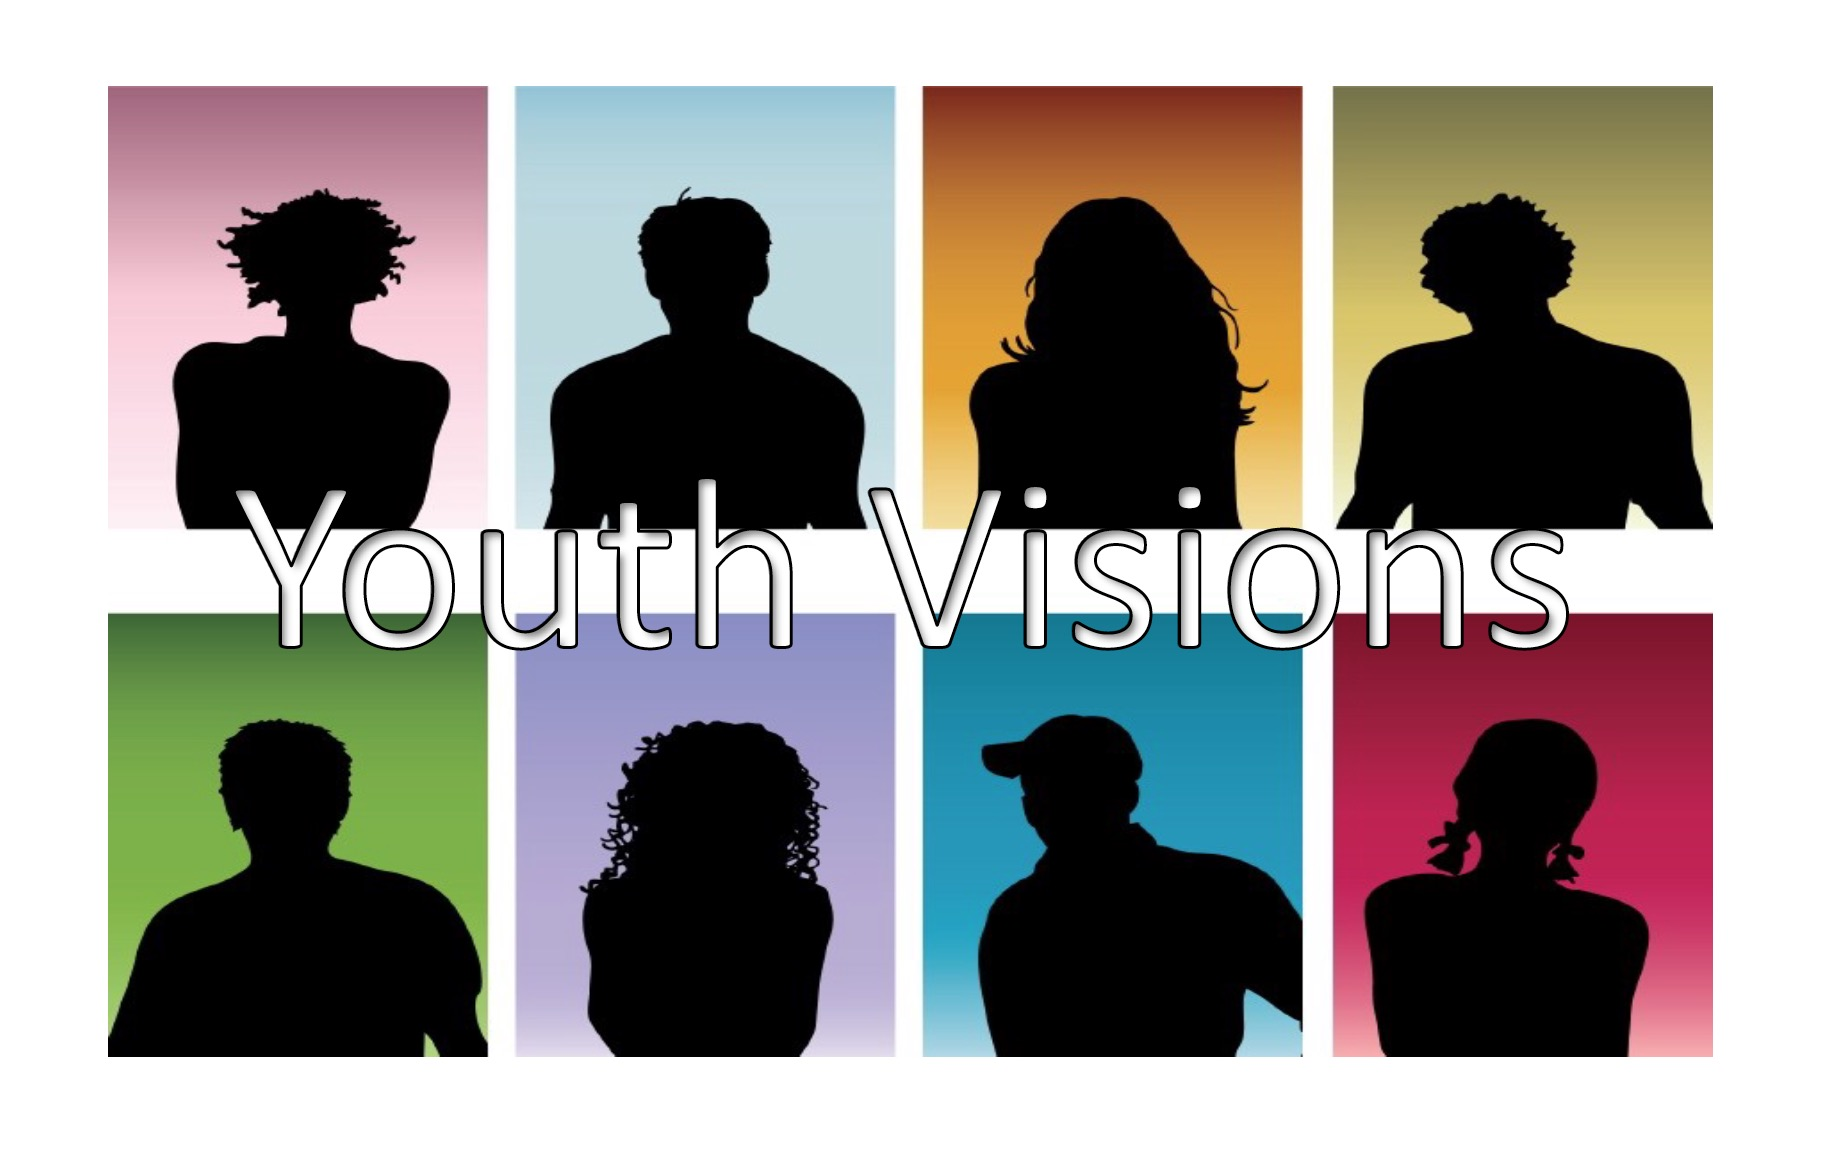 Youth Visions